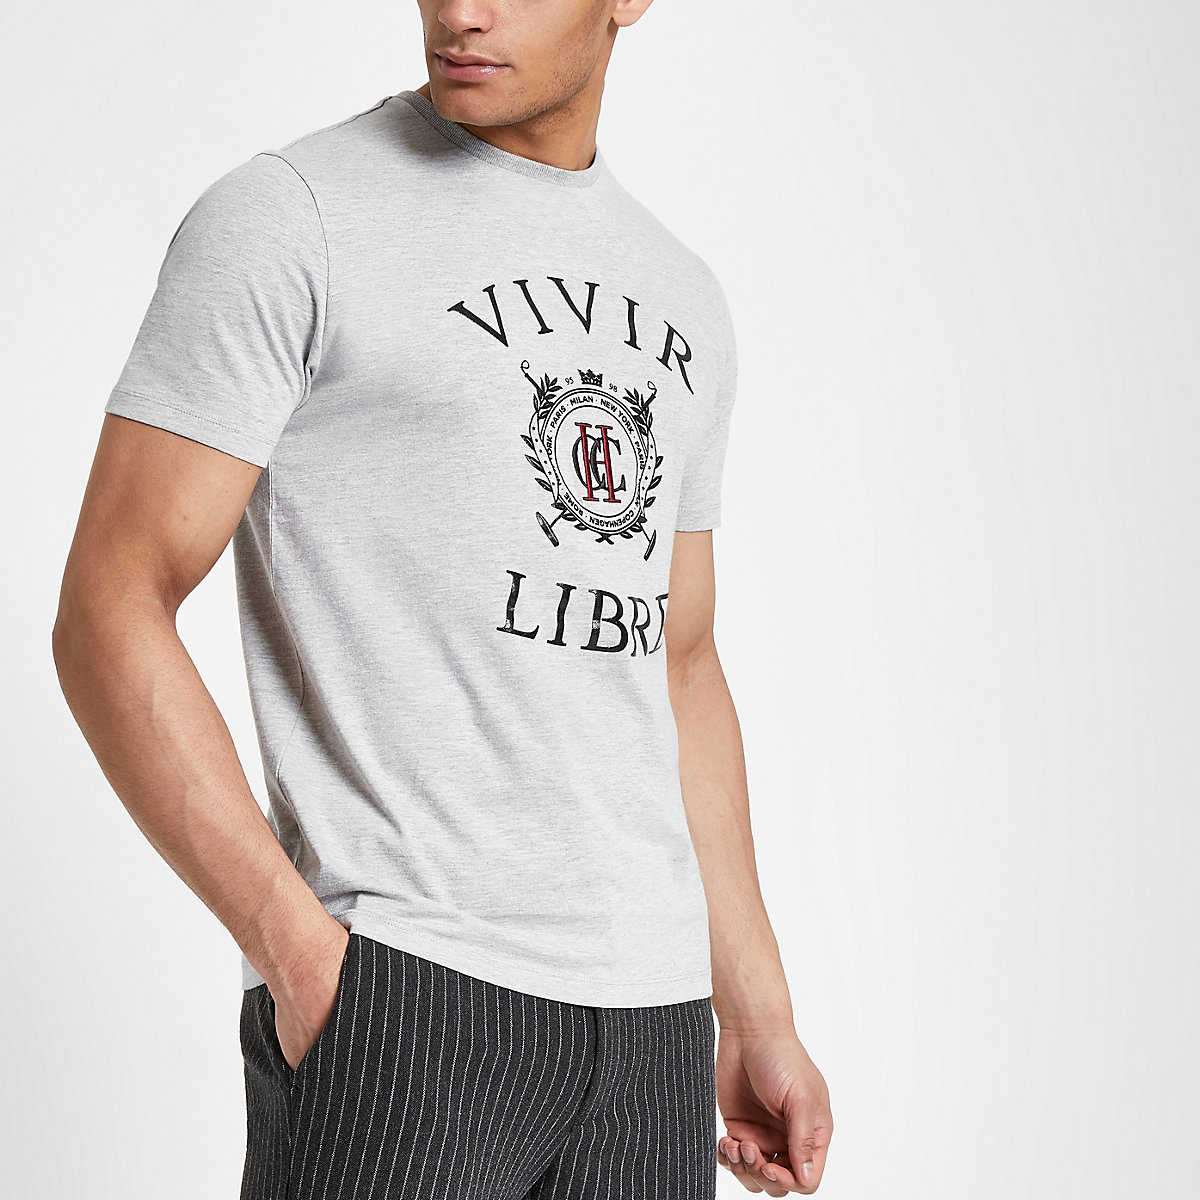 Grey slim fit 'Vivir Libre' print T-shirt